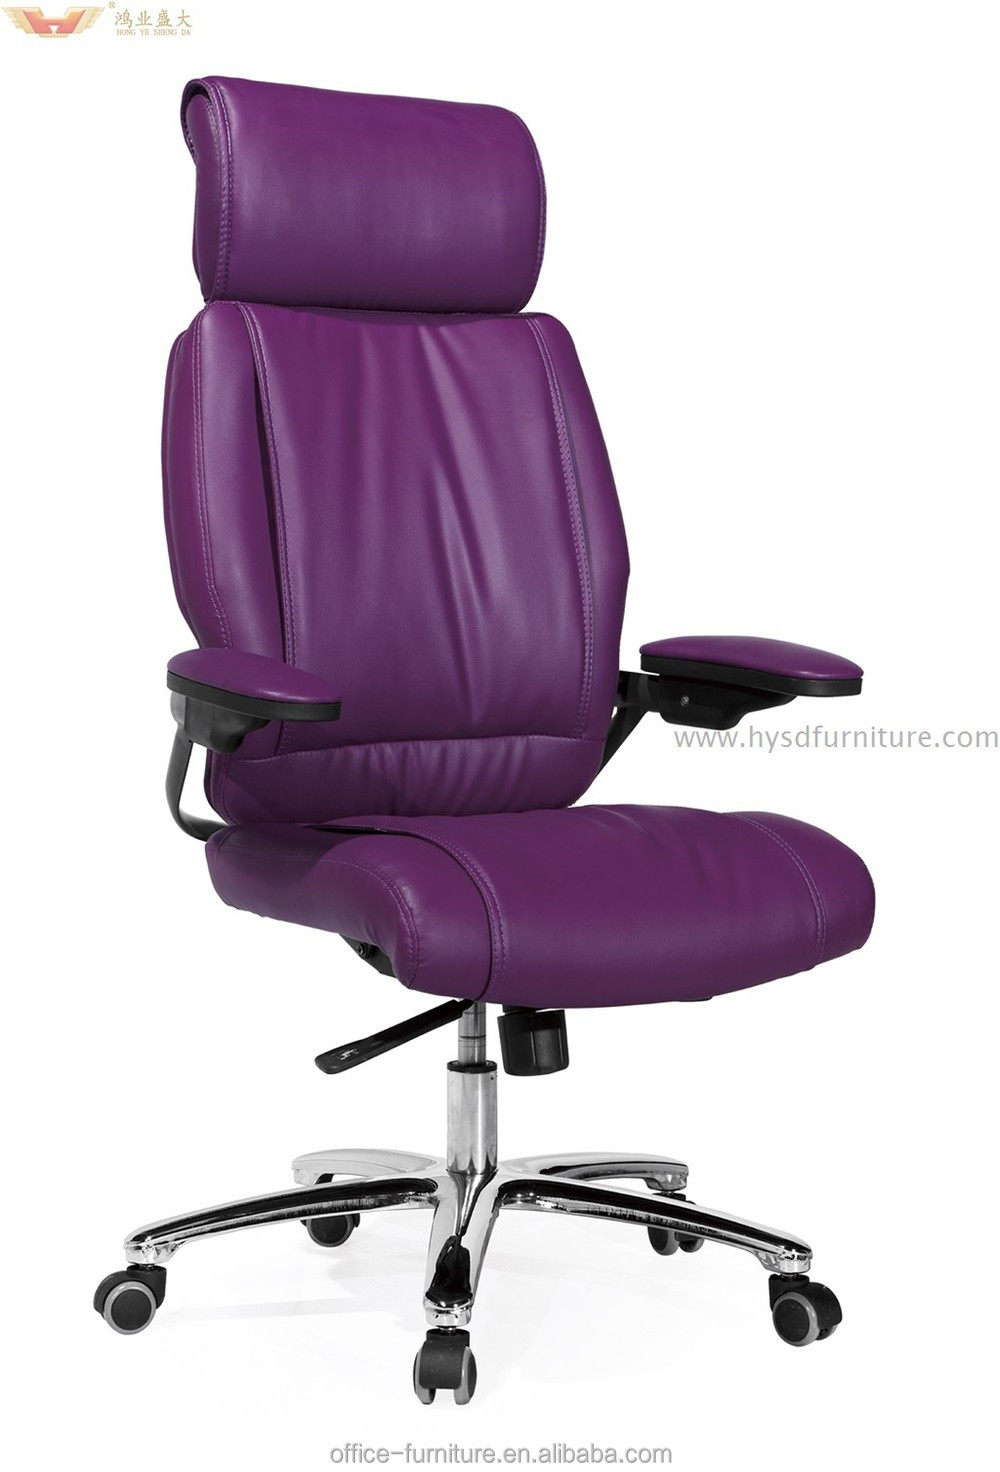 Hot Sale High Quality Commercial Purple Leather Modern Office Chair Design Buy Hot Sale Office Chair Office Furniture Purple Leather Office Chair Commercial Office Chairs Product On Alibaba Com